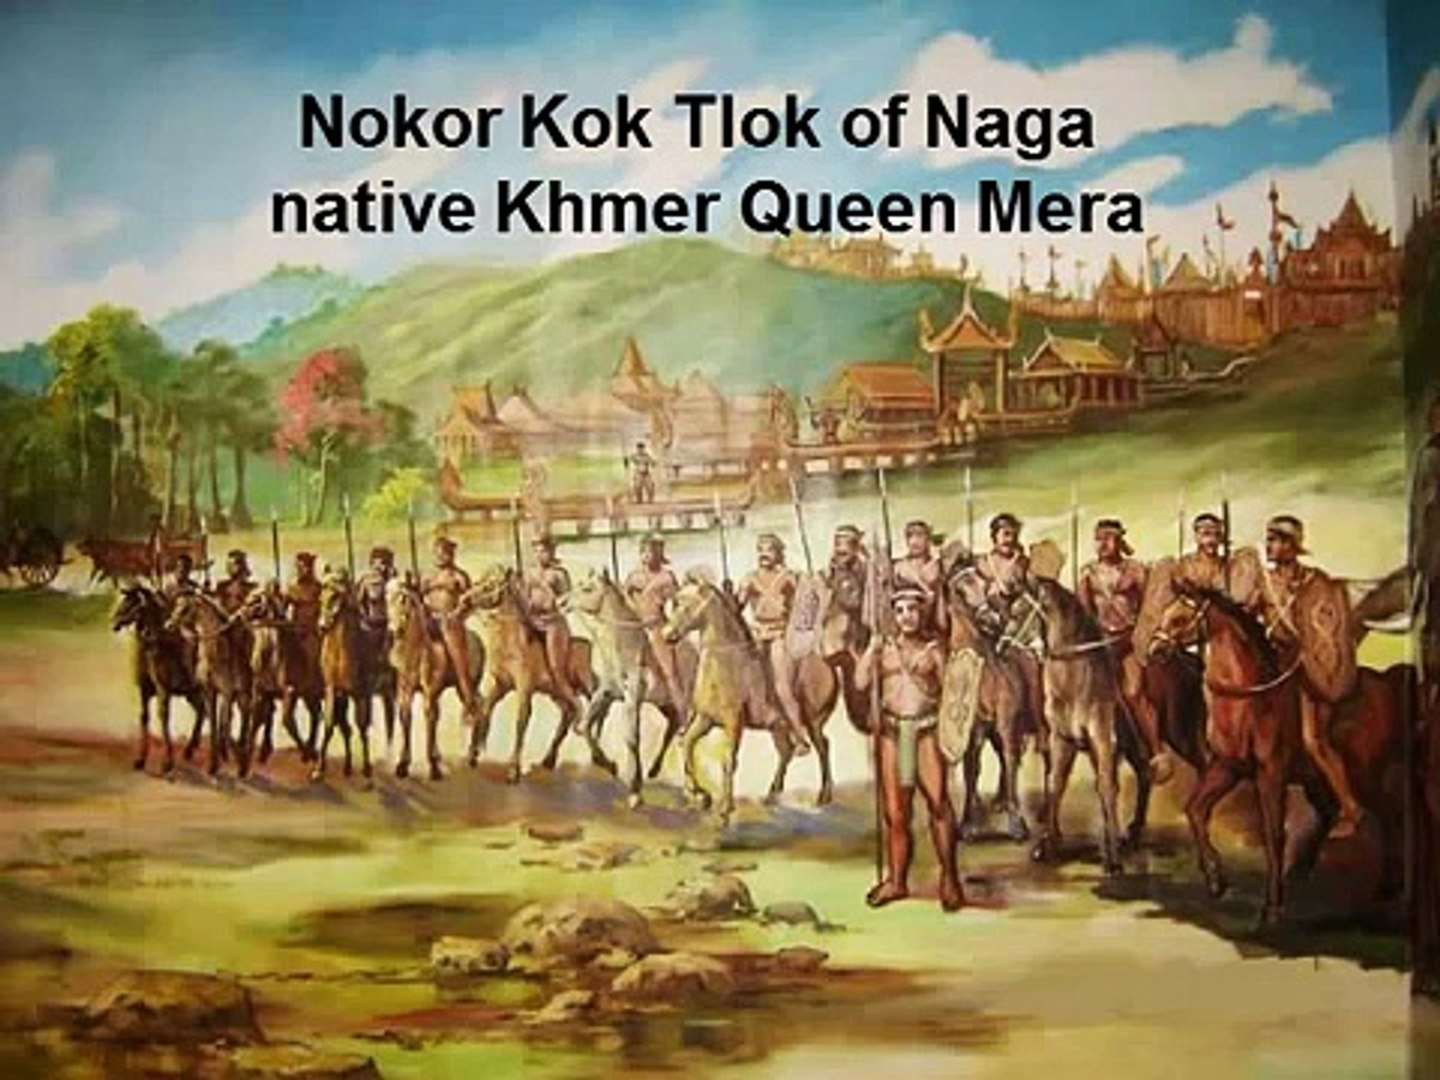 KHMER PEOPLE LIFE STYLE MAKES KHMER CIVILIZATION NOT HISTORICAL AFRICAN INFLUENCE!!!